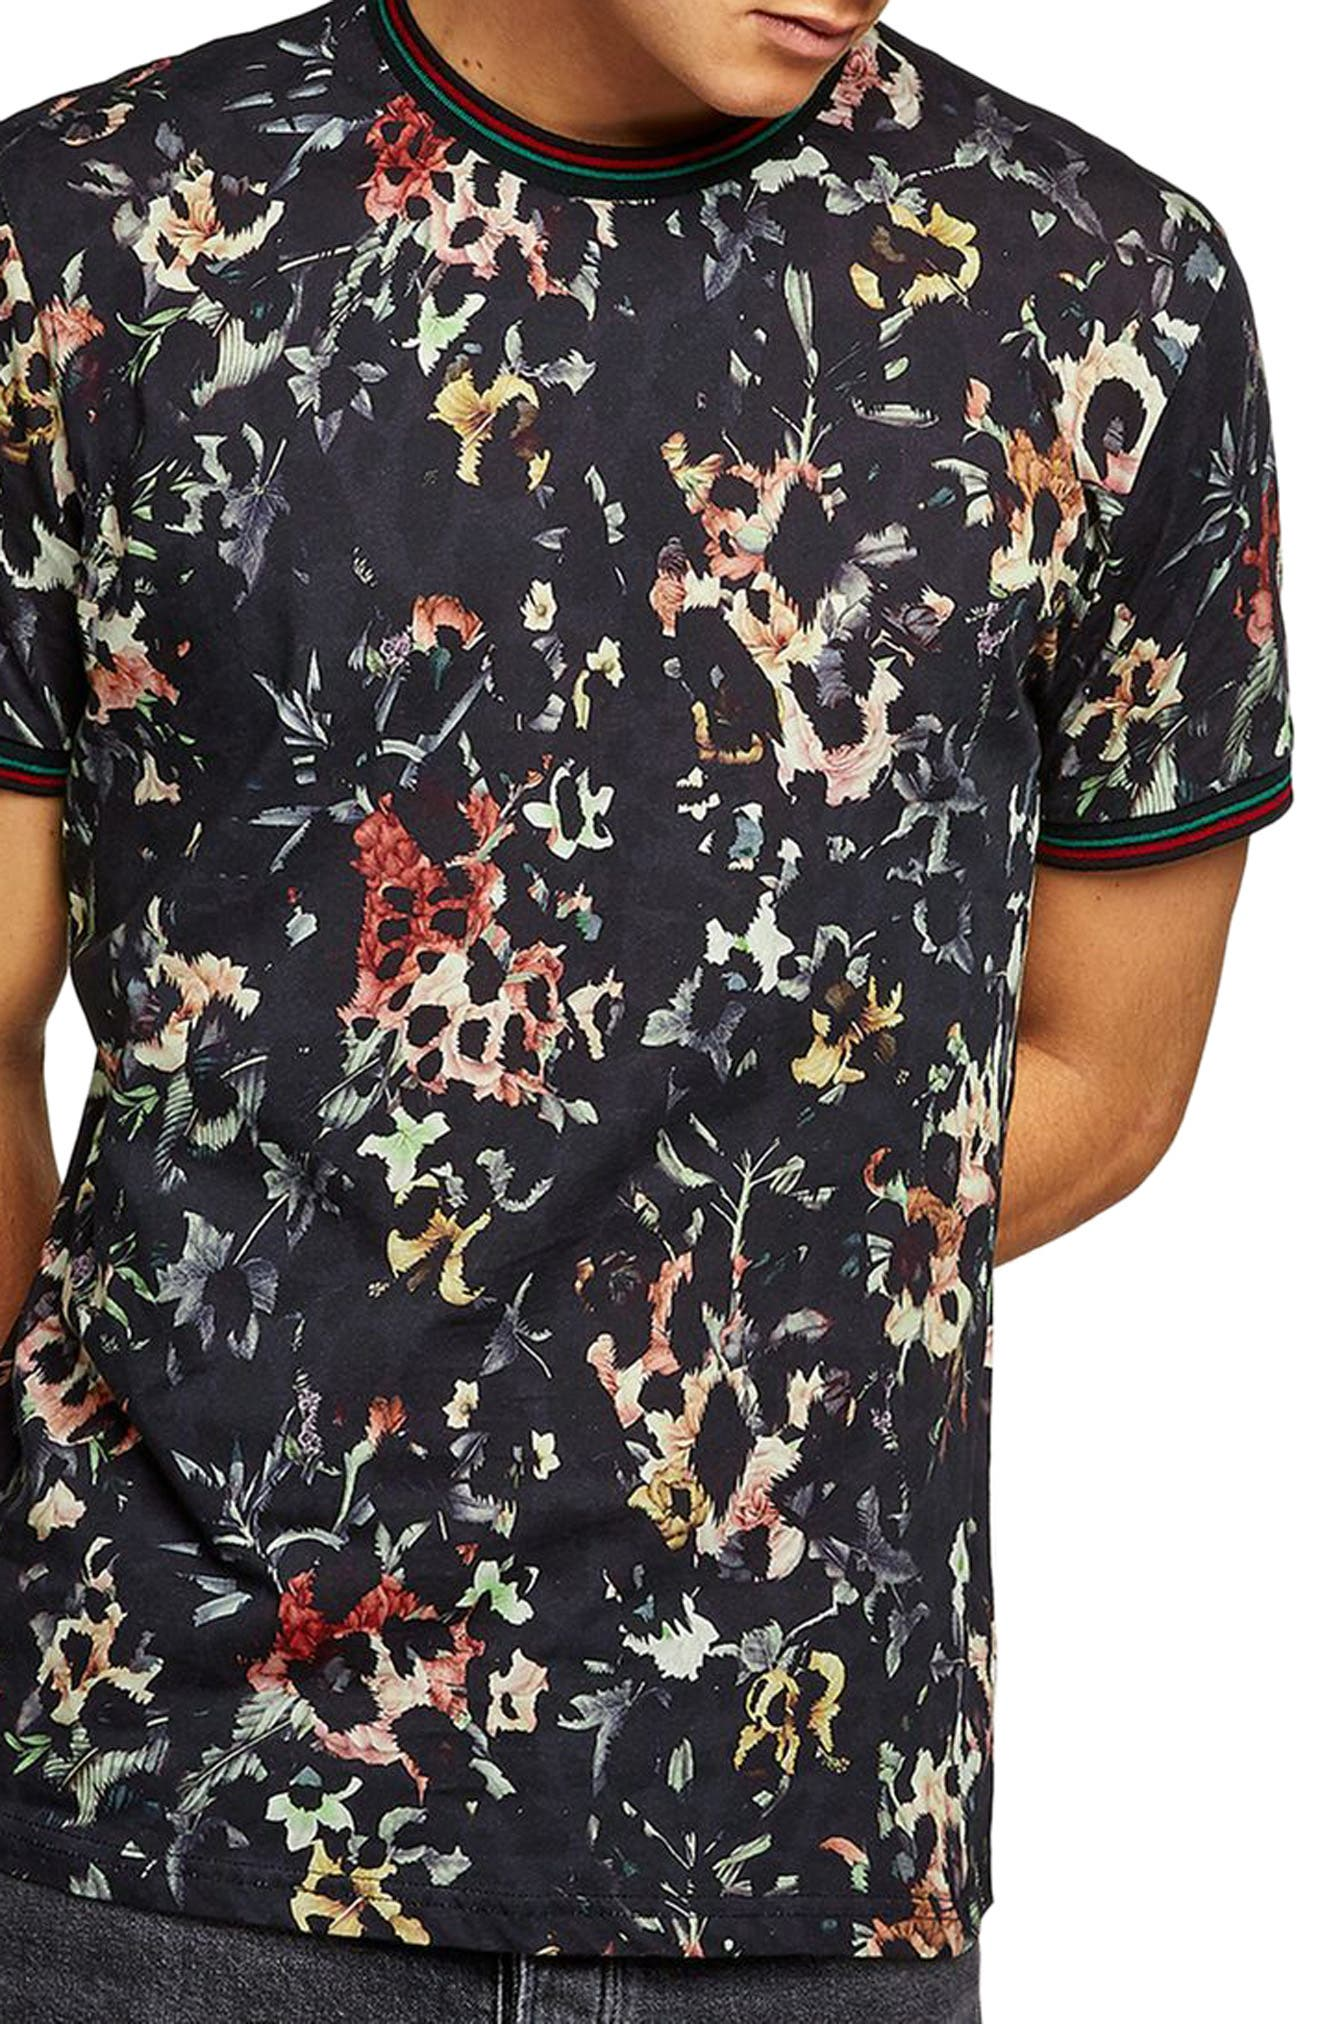 Alternate Image 1 Selected - Topman Floral Leopard Print T-Shirt